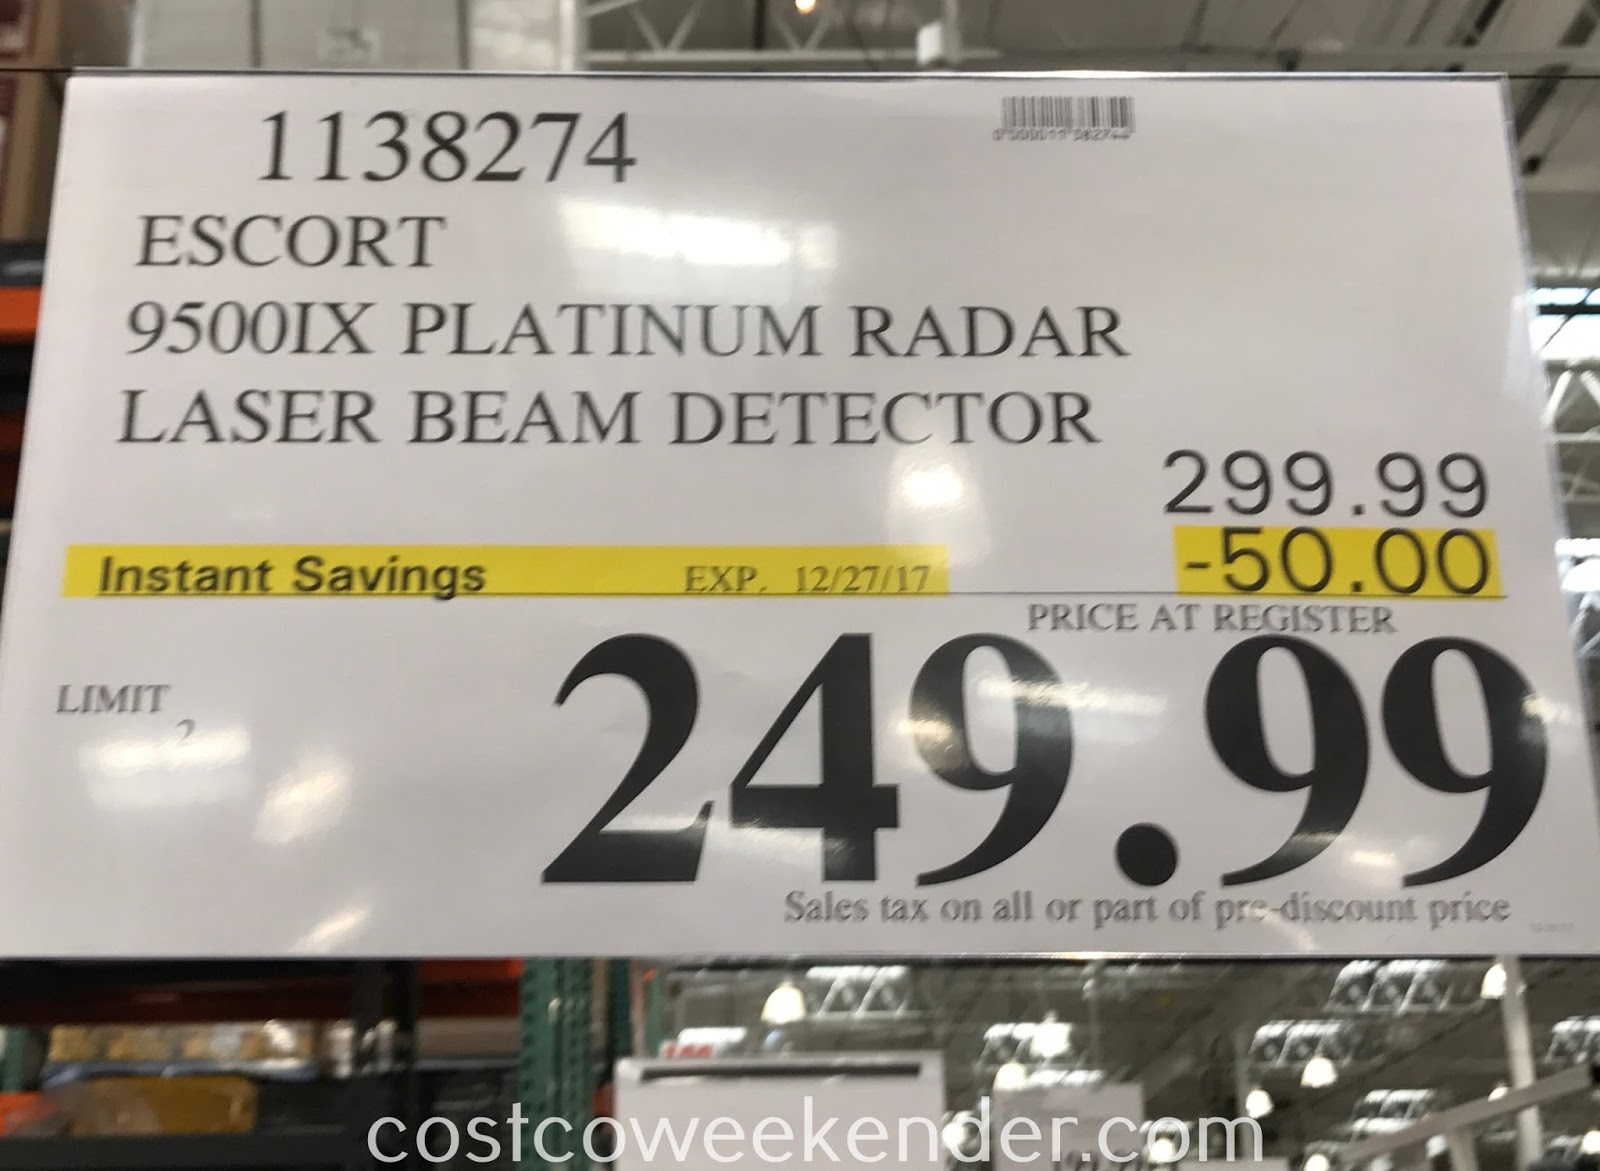 Deal for the Escort Passport 9500IX Platinum Radar/Laser Detector at Costco